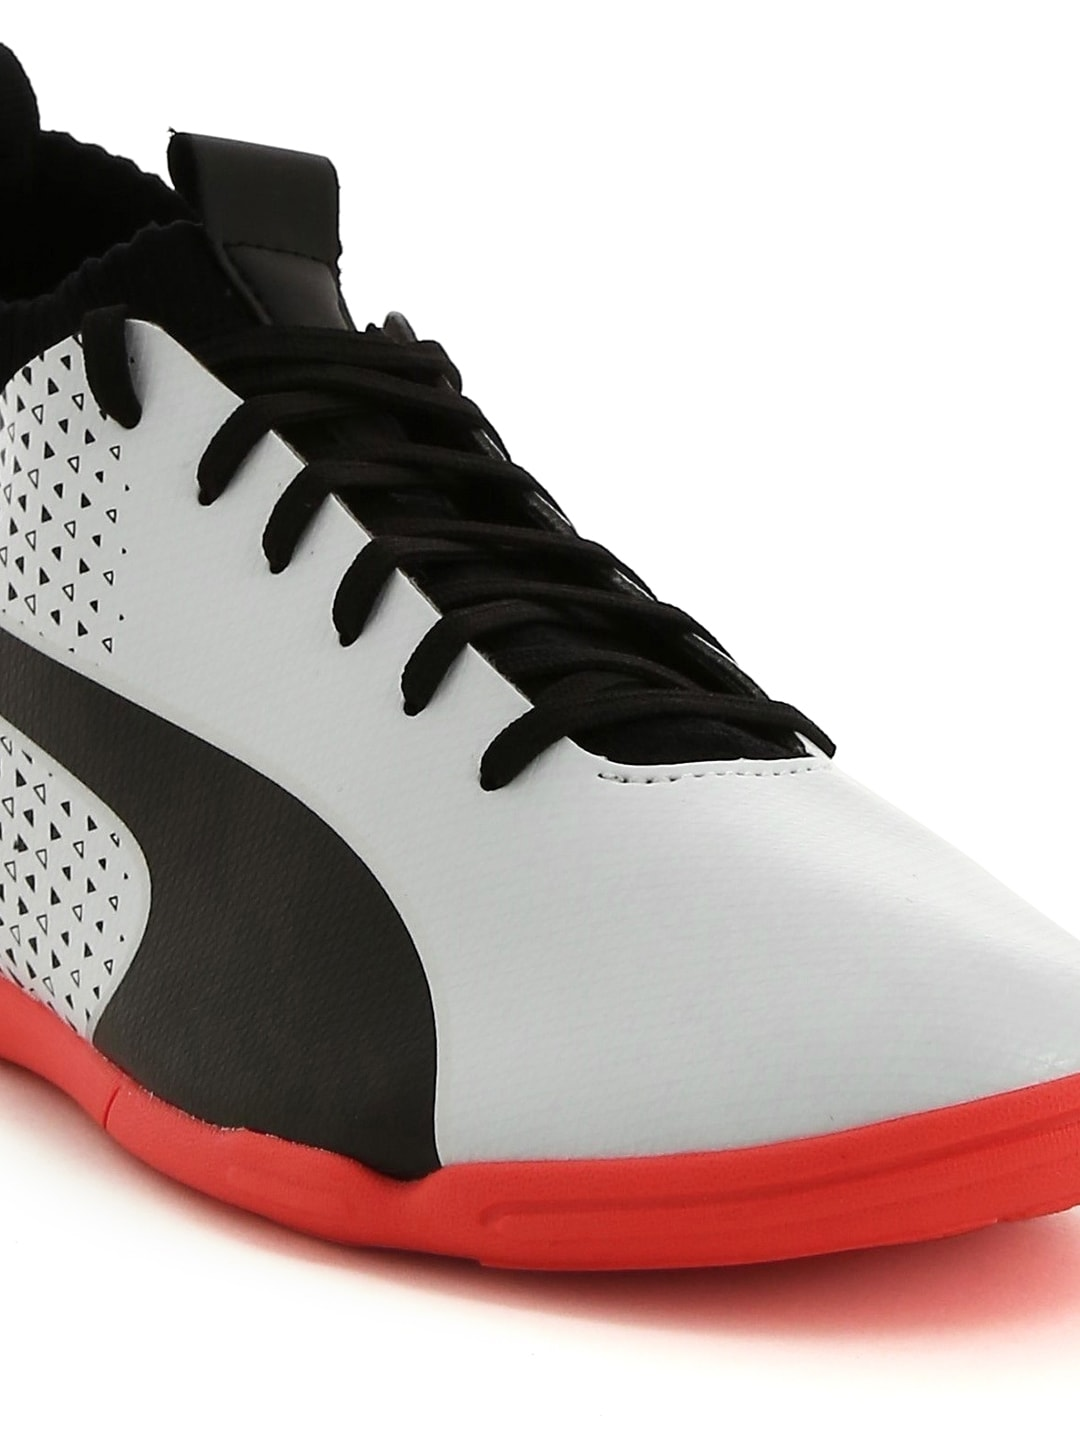 a8838c5185b0 puma high ankle shoes flipkart cheap   OFF64% Discounted